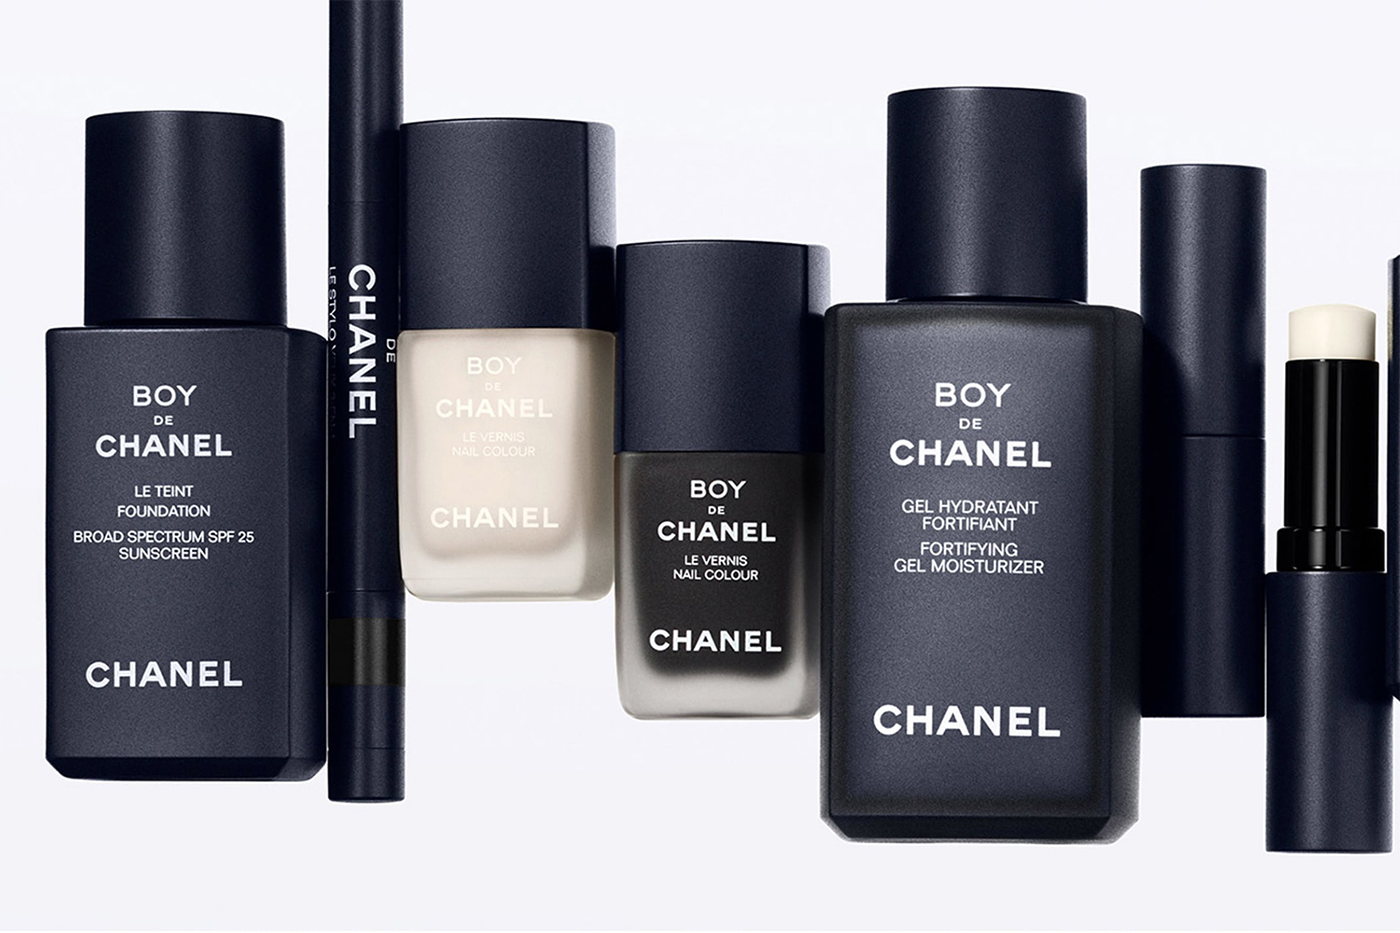 Chanel launches more products in the Boy de Chanel range